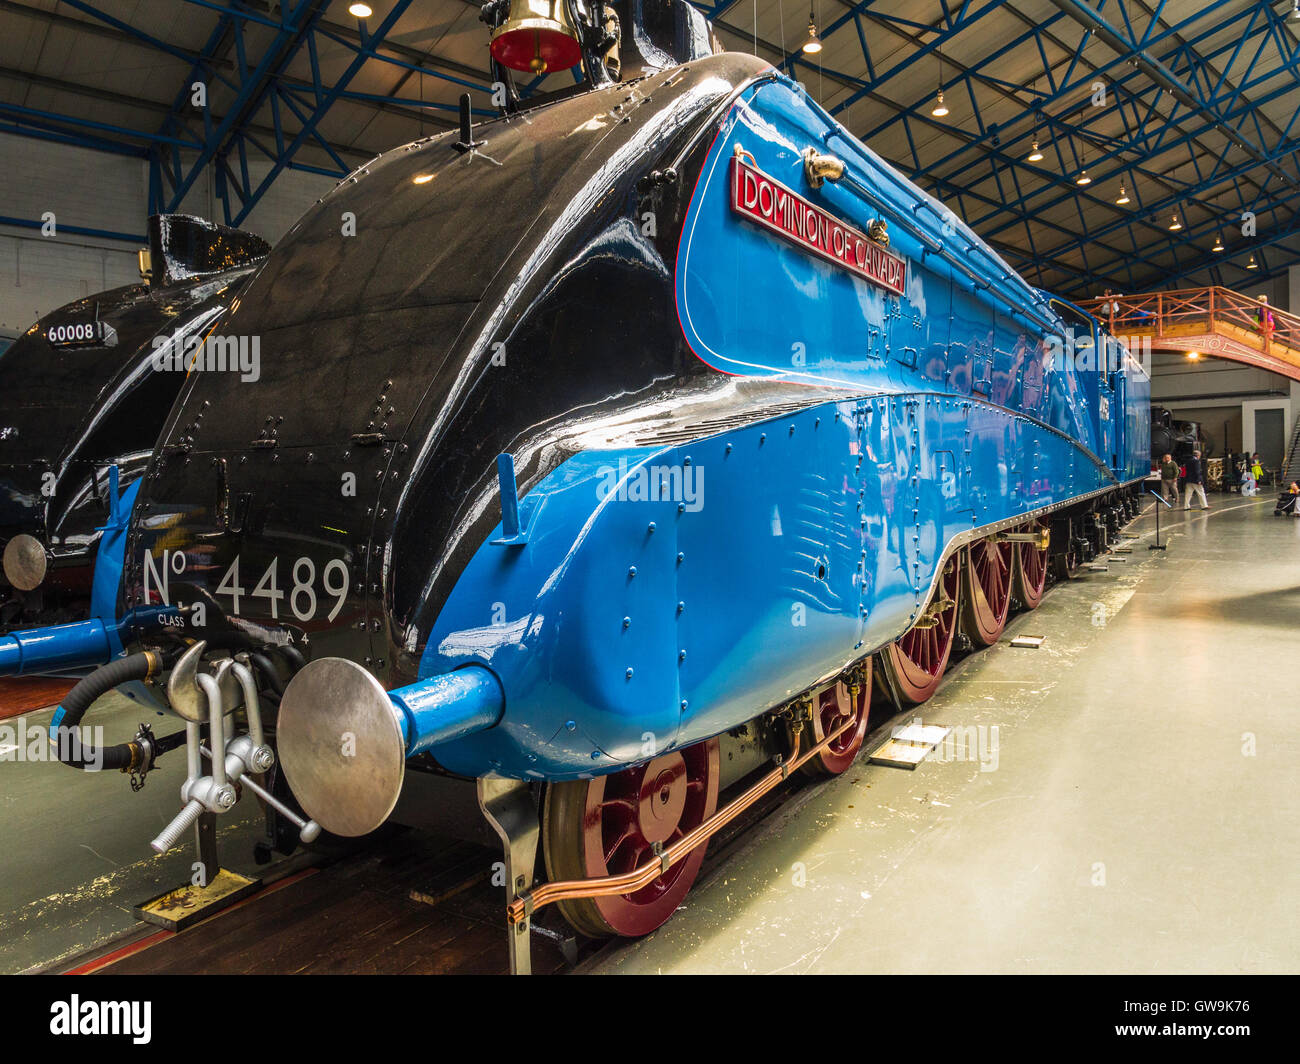 4489 'Dominion of Canada' class A4 4-6-2 steam locomotive formerly operated by LNER. Seen at National Railway - Stock Image